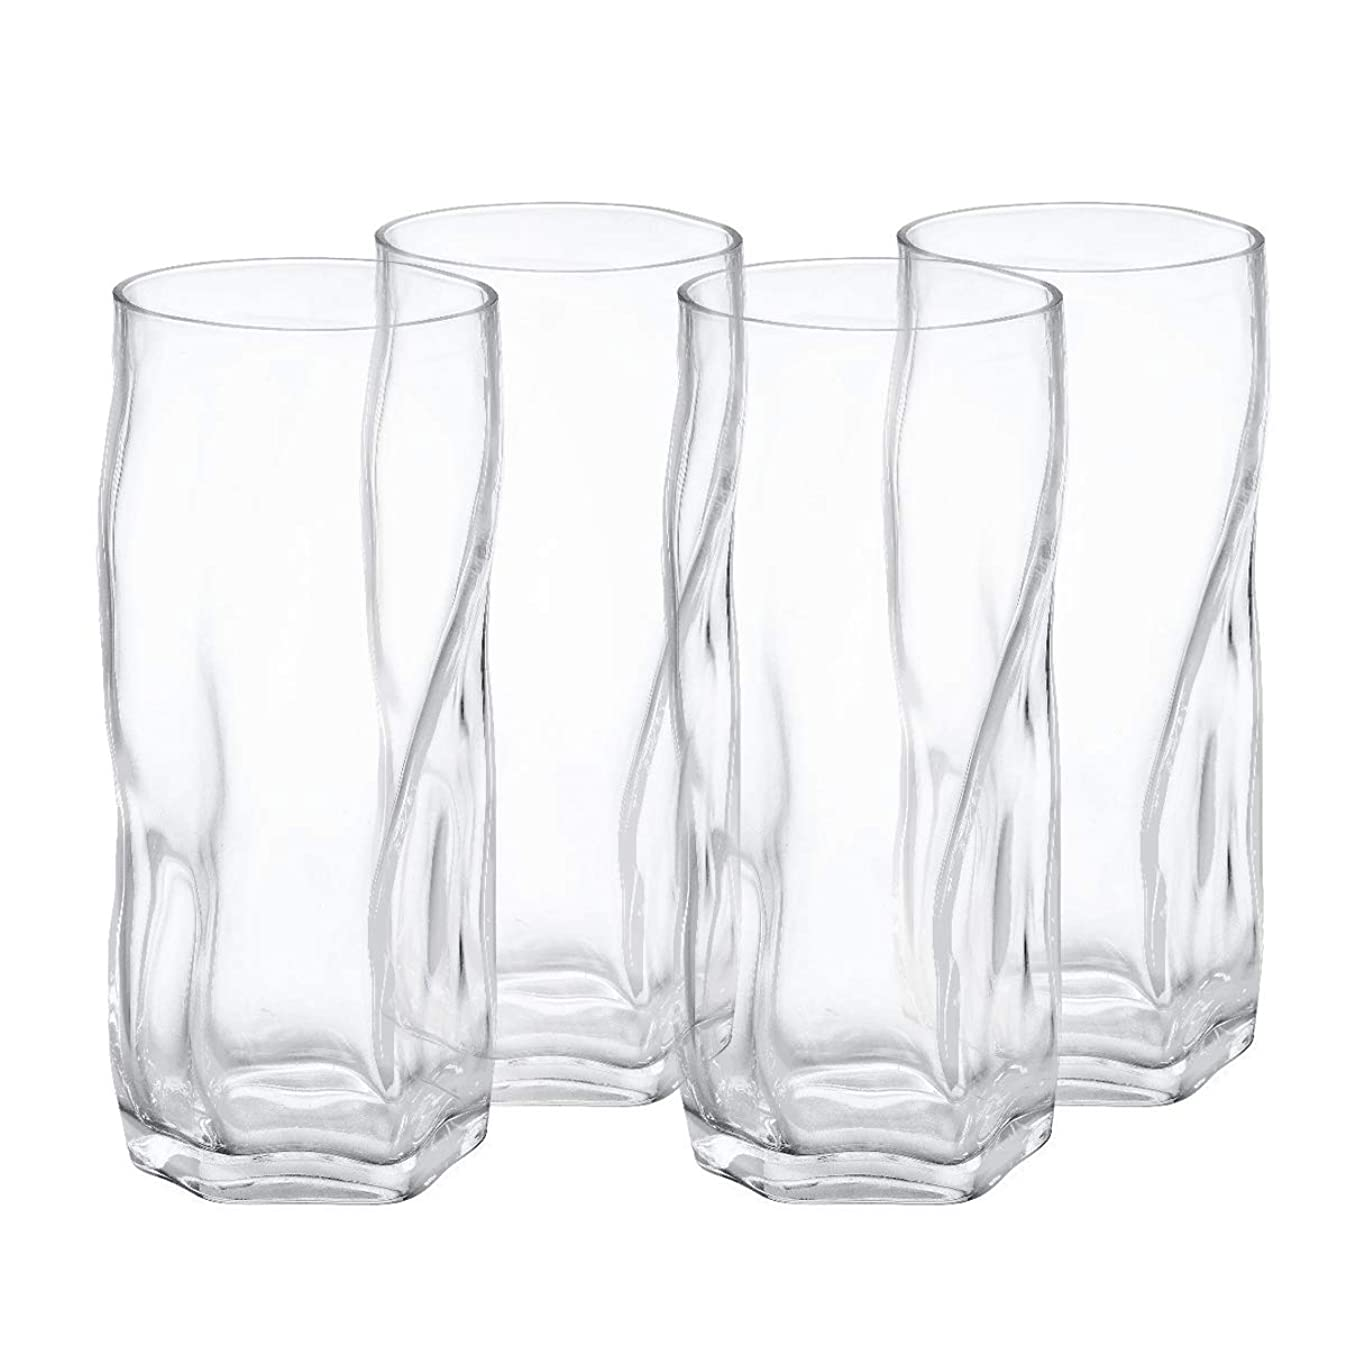 Drinking glasses Clear Water Tumbler, Highball Glassware Set of 4, 18OZ